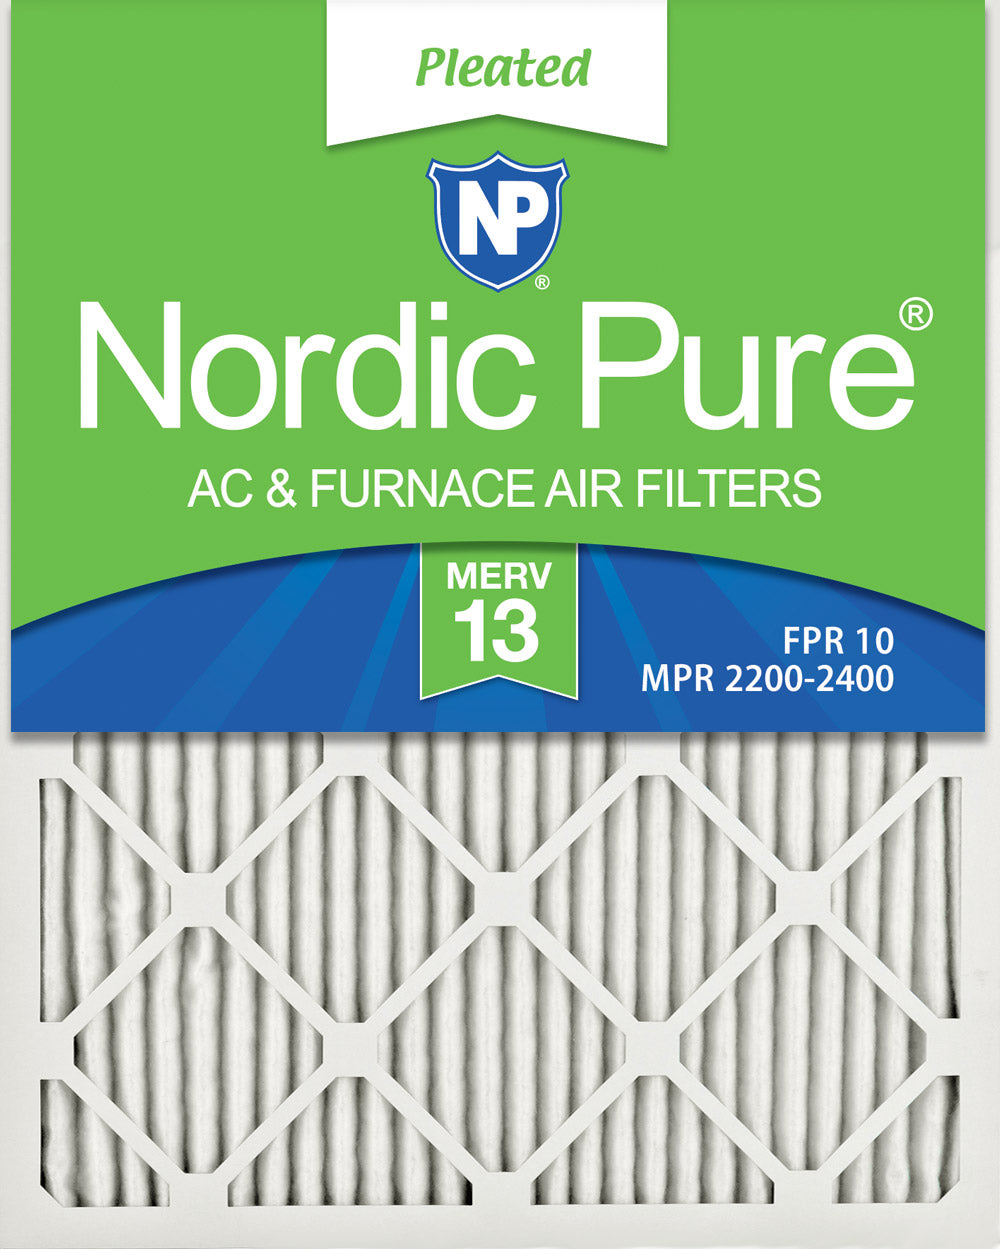 20x24x1 Pleated MERV 13 Air Filters 3 Pack